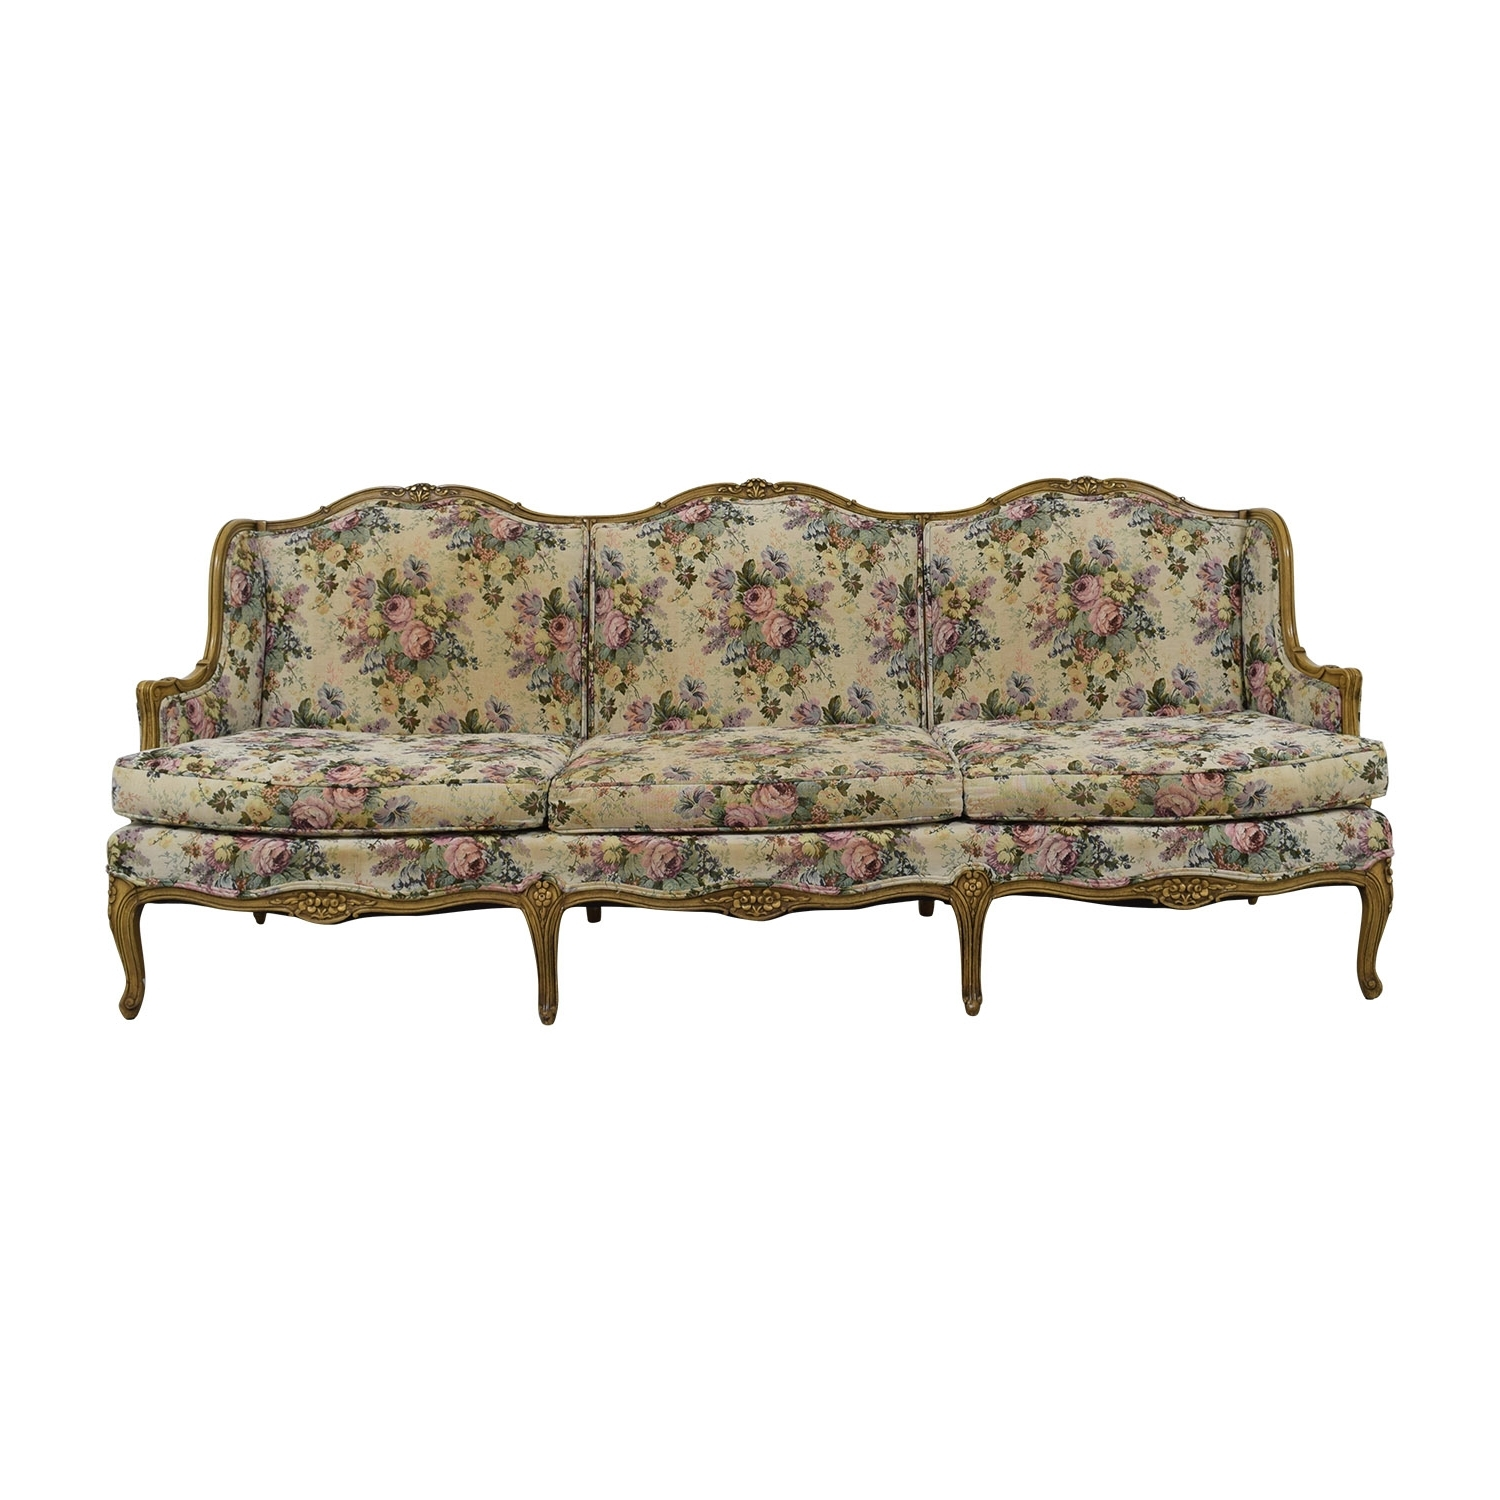 [%86% Off – Vintage Floral Sofa / Sofas Pertaining To Most Popular Vintage Sofas|Vintage Sofas Inside Most Up To Date 86% Off – Vintage Floral Sofa / Sofas|Trendy Vintage Sofas Pertaining To 86% Off – Vintage Floral Sofa / Sofas|Trendy 86% Off – Vintage Floral Sofa / Sofas For Vintage Sofas%] (View 1 of 20)